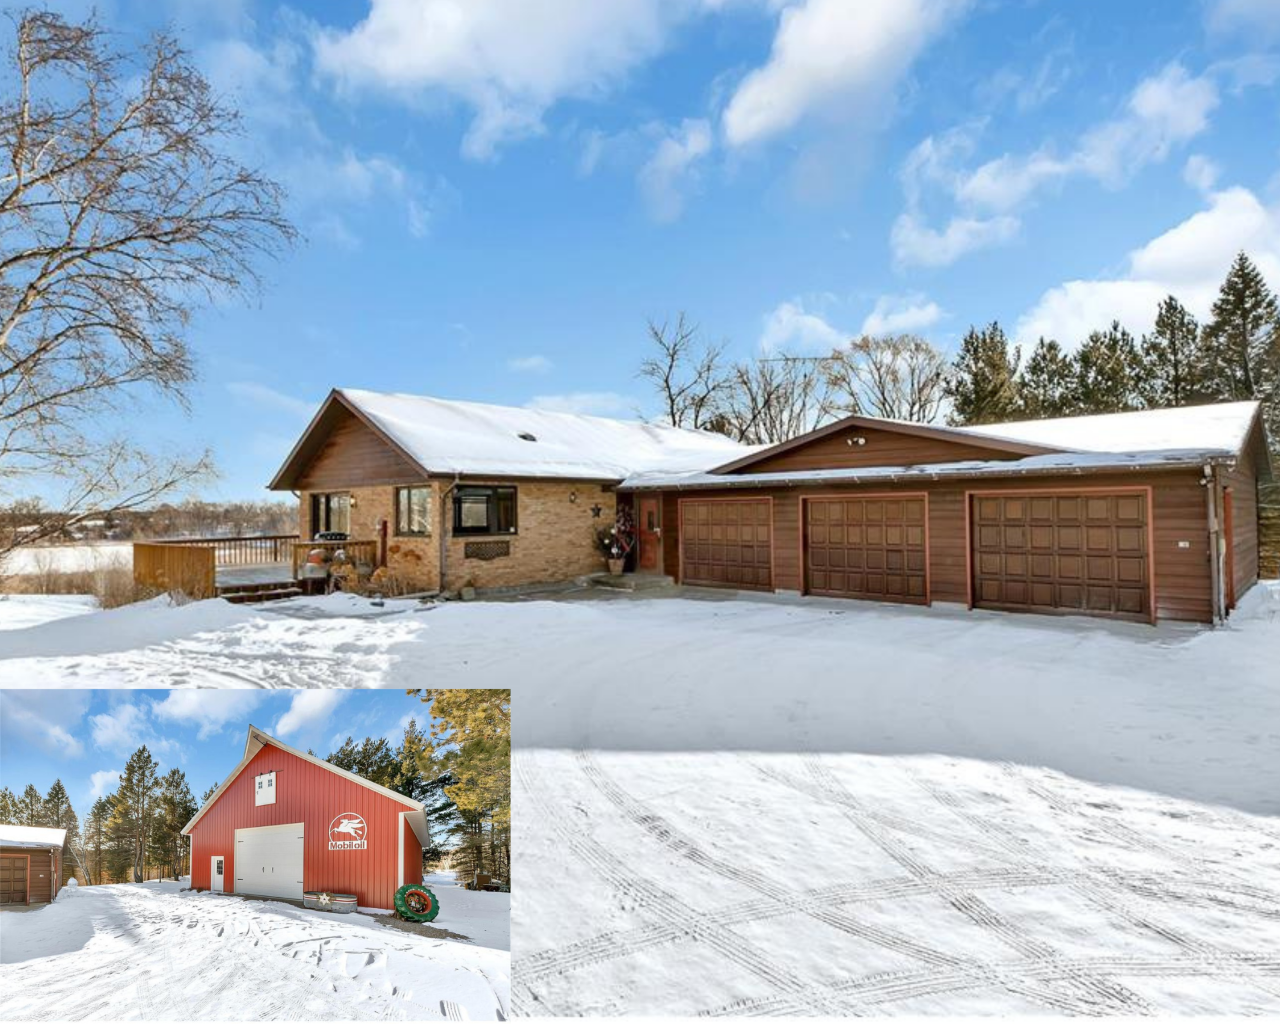 Looking for country living? You could enjoy 20 acres near Cold Spring. Located in a private setting. This 3 bedroom 3 bath walkout rambler features a kitchen with granite tops, oak cabinetry, tons of windows with natural lighting. Main floor master suite with jacuzzi jetted tub, walk-in closet, office & den that could be used as an additional bedroom, laundry off the garage and 1/2 bath. LL features a wet bar, large family room for entertaining your guests, rec room, full bath, 2 bedrooms and utility rooms. 3 stall 30x35 attached garage with over head storage. Large deck with nice view of a pond, lots of wildlife. Enjoy the trails throughout the property. Mature trees including apple trees. Back up generator hookup. Power line easement on property. Don't forget to check out the 40x56 pole building with electrical & concrete flooring. Rocori School District. You don't want to miss this one! Check out the virtual tour!